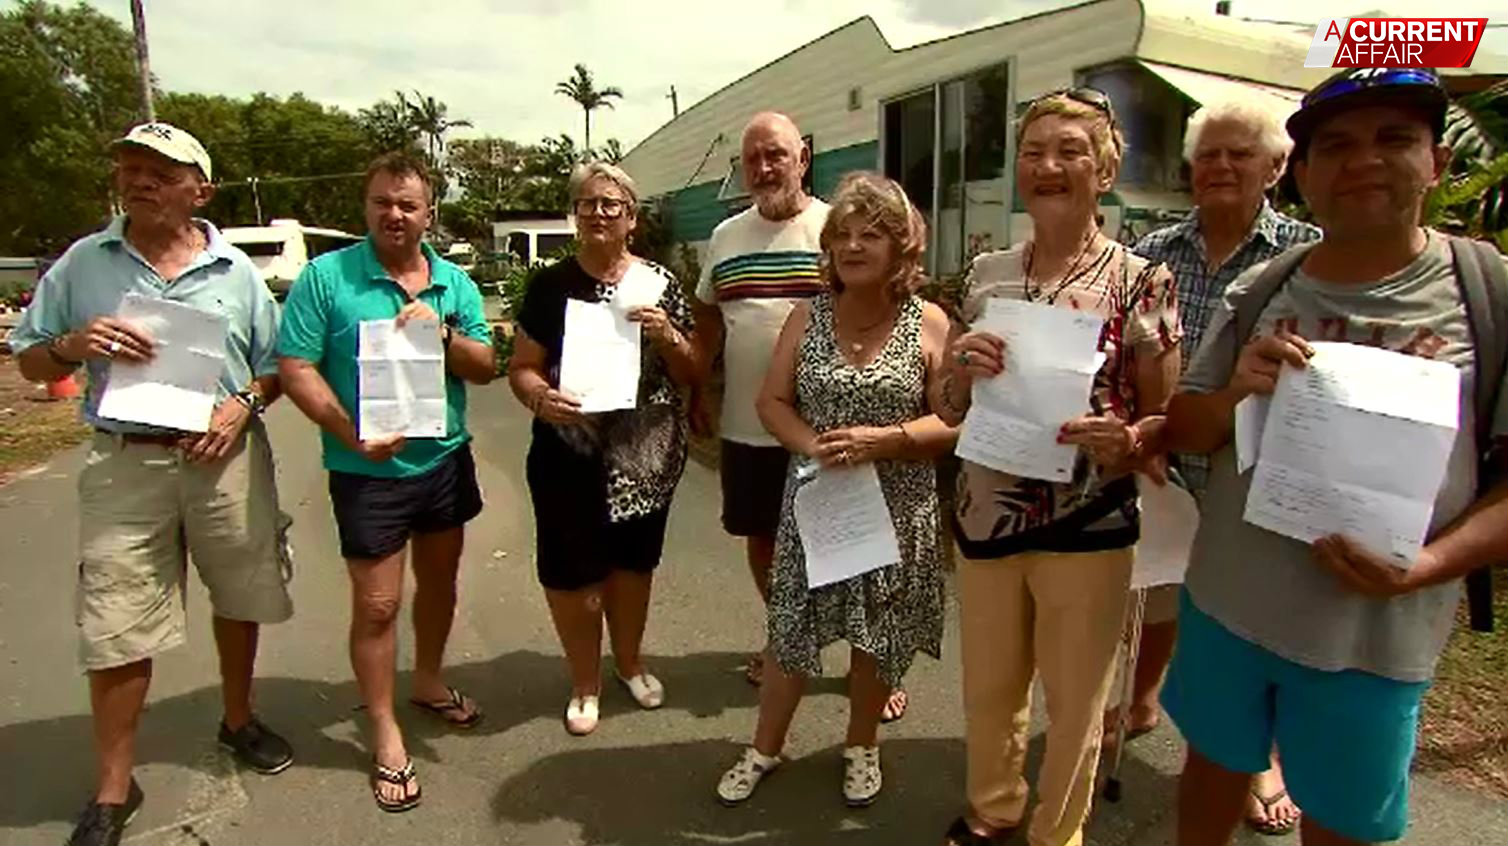 Residents prepare to fight after orders to leave caravan park